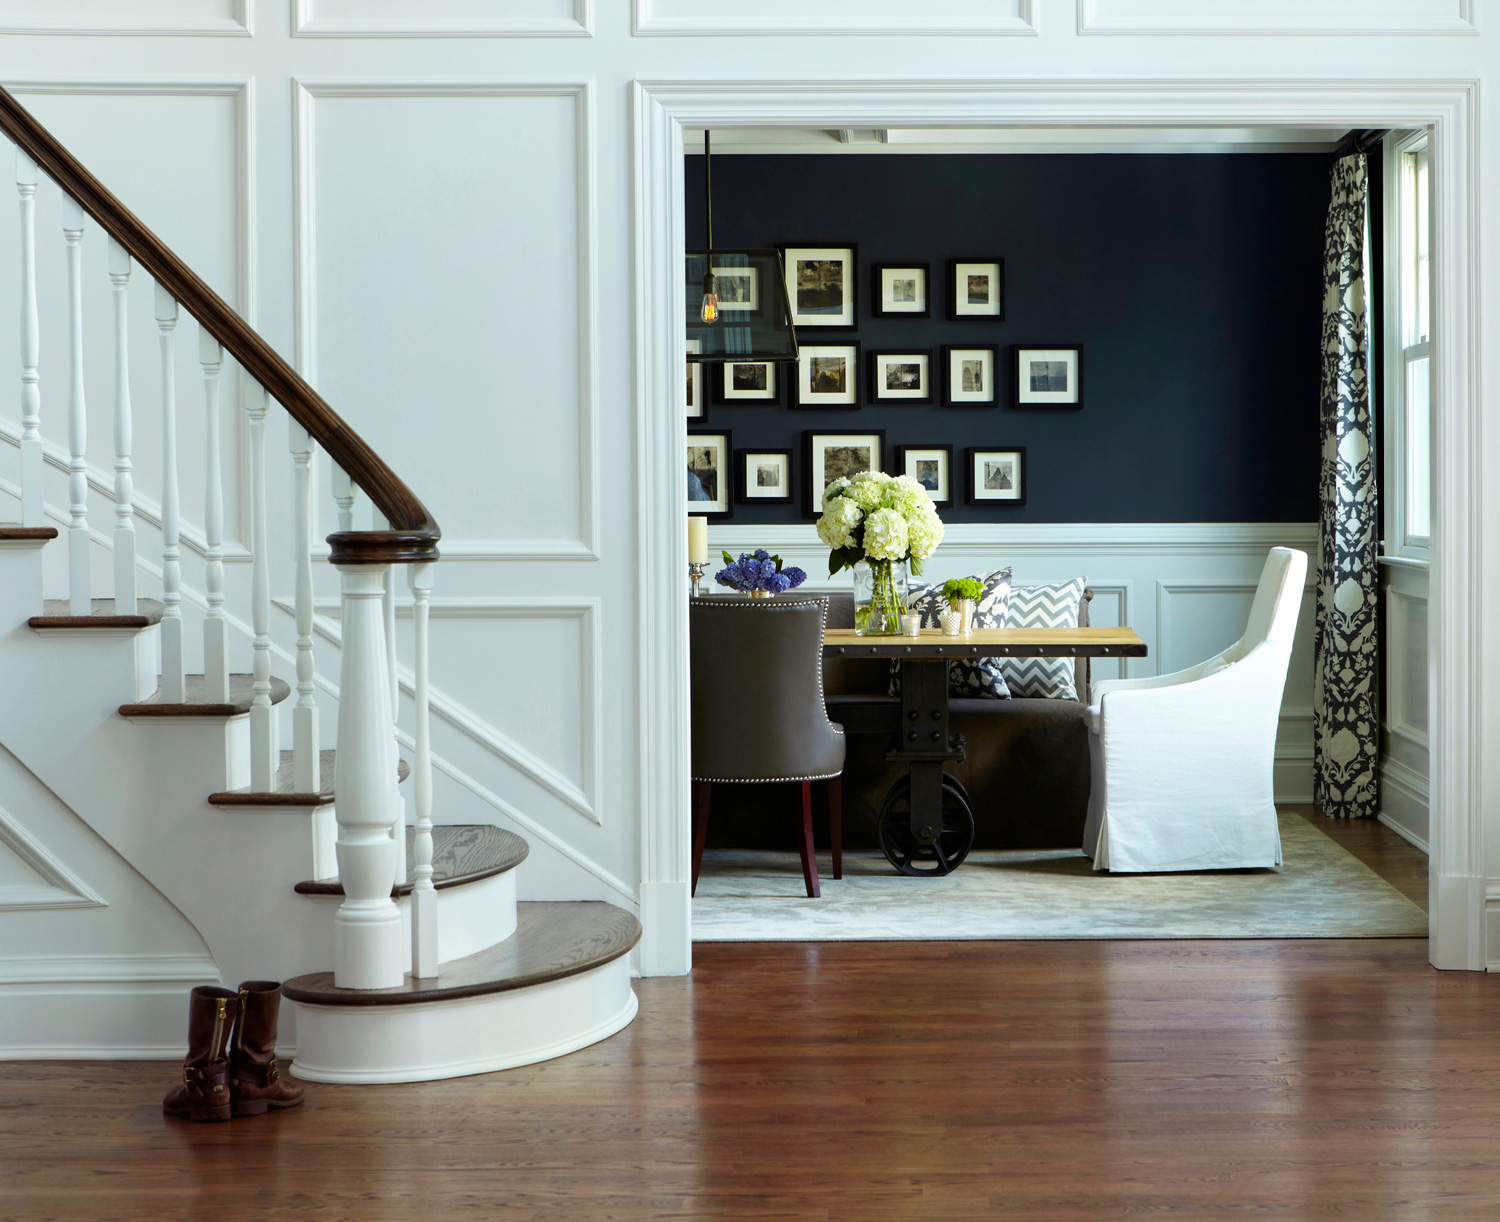 Benjamin Moore Deep Royal dining